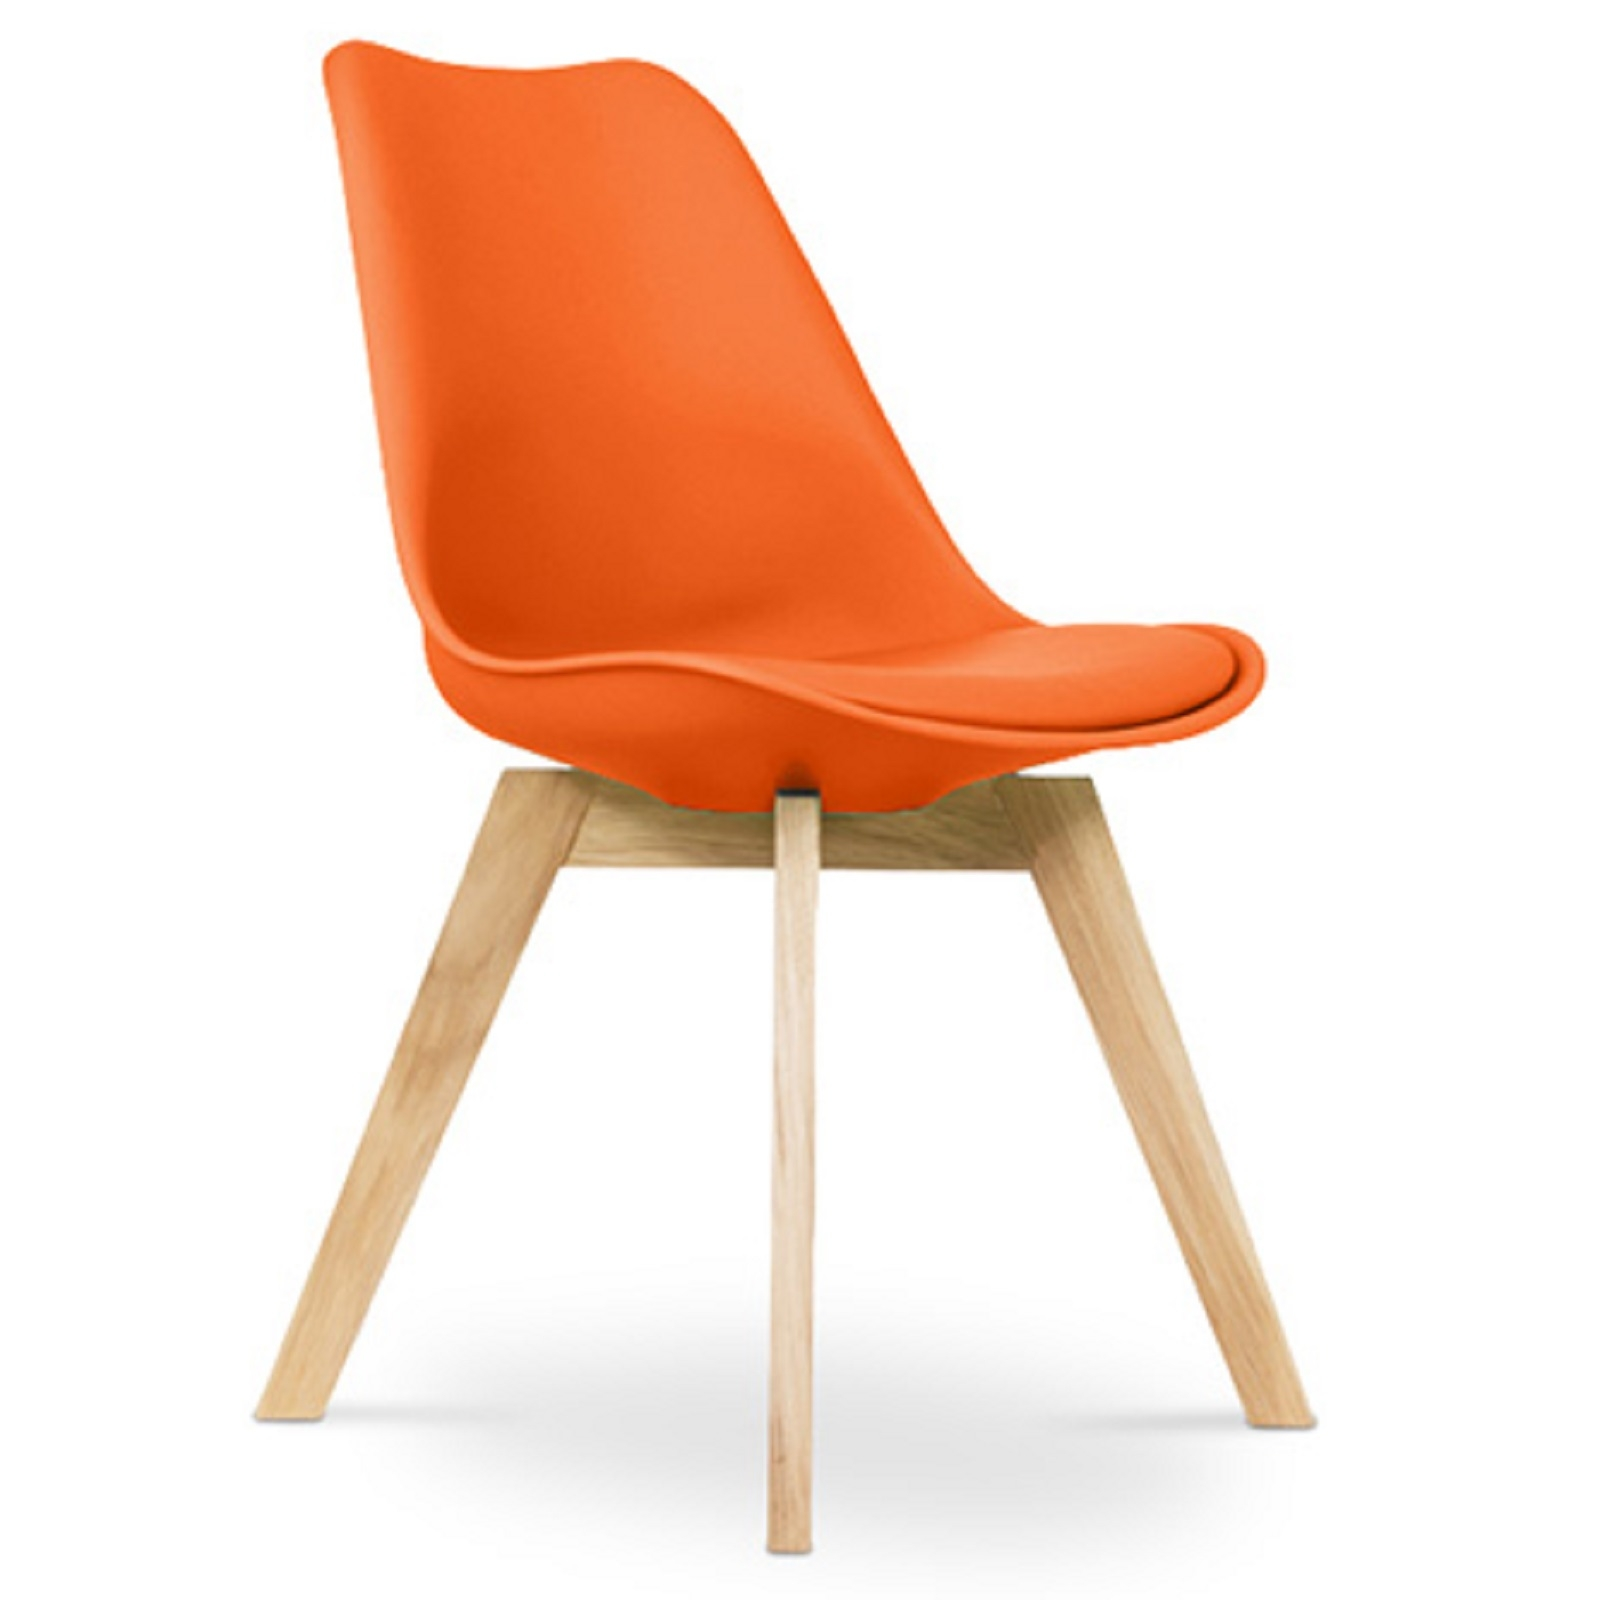 chaise scandinave avec coussin simili orange inspir charles eames. Black Bedroom Furniture Sets. Home Design Ideas